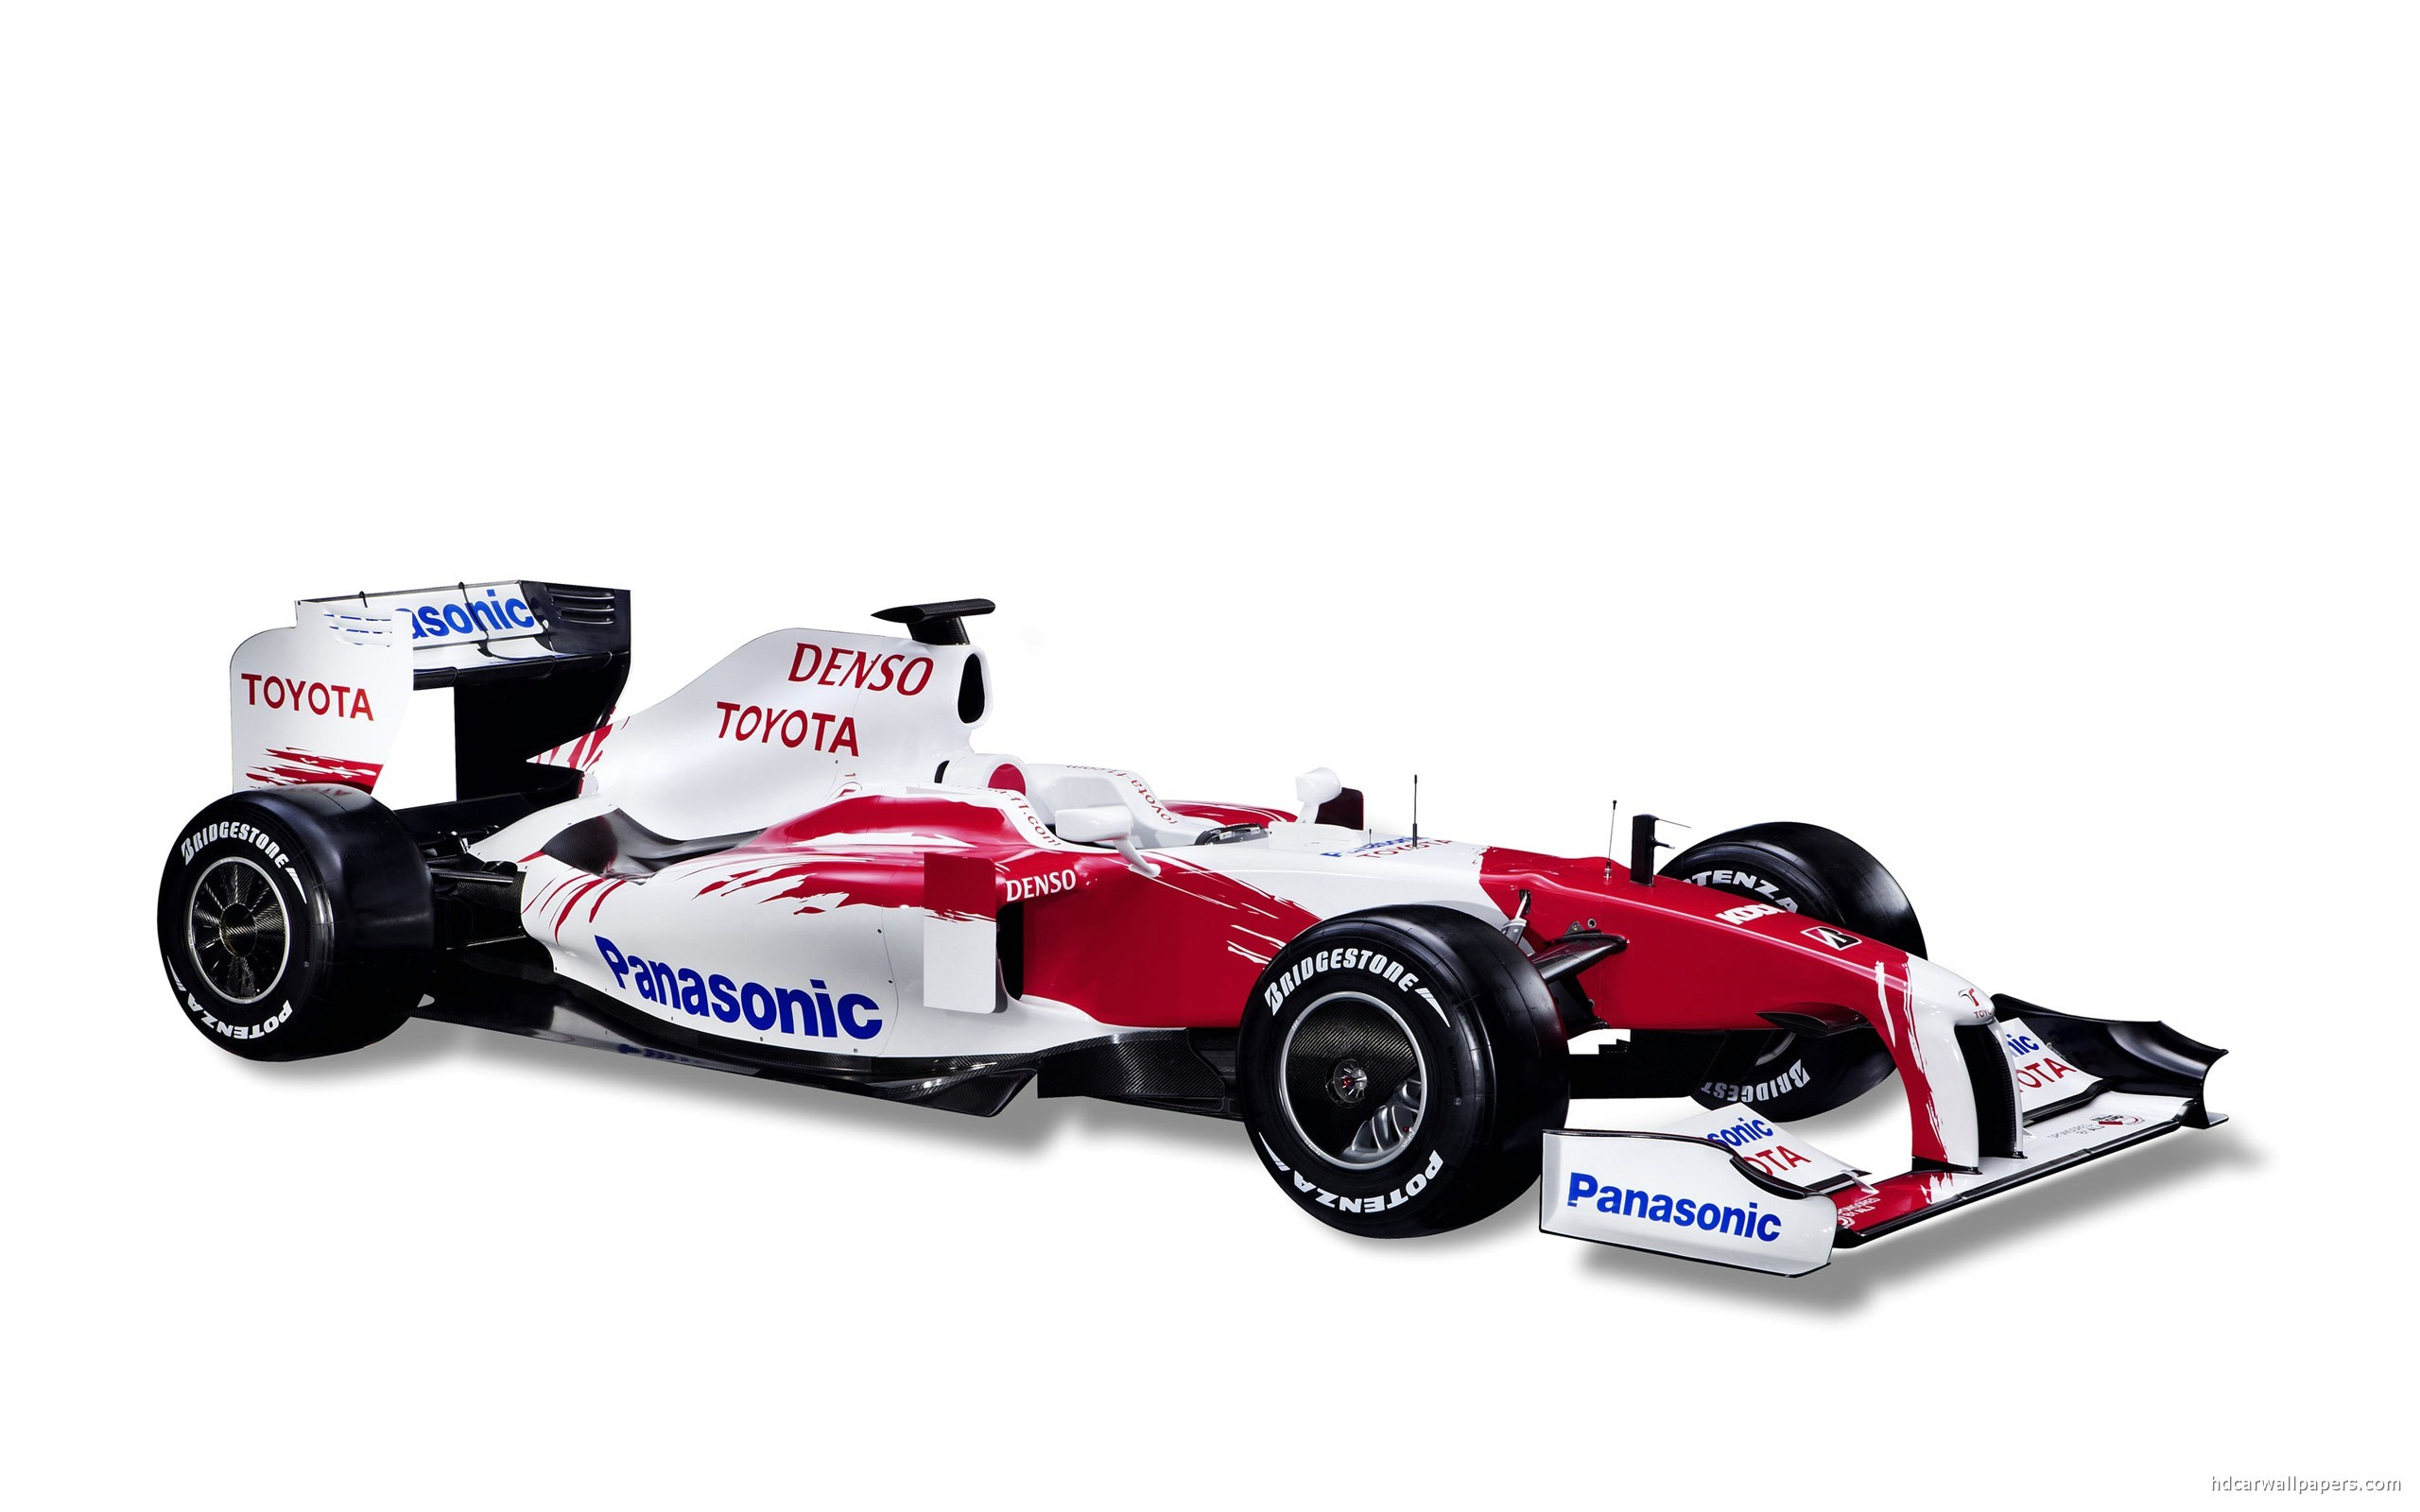 Toyota tf109 race car wallpaper hd car wallpapers id 1452 - Racing cars wallpapers for mobile ...